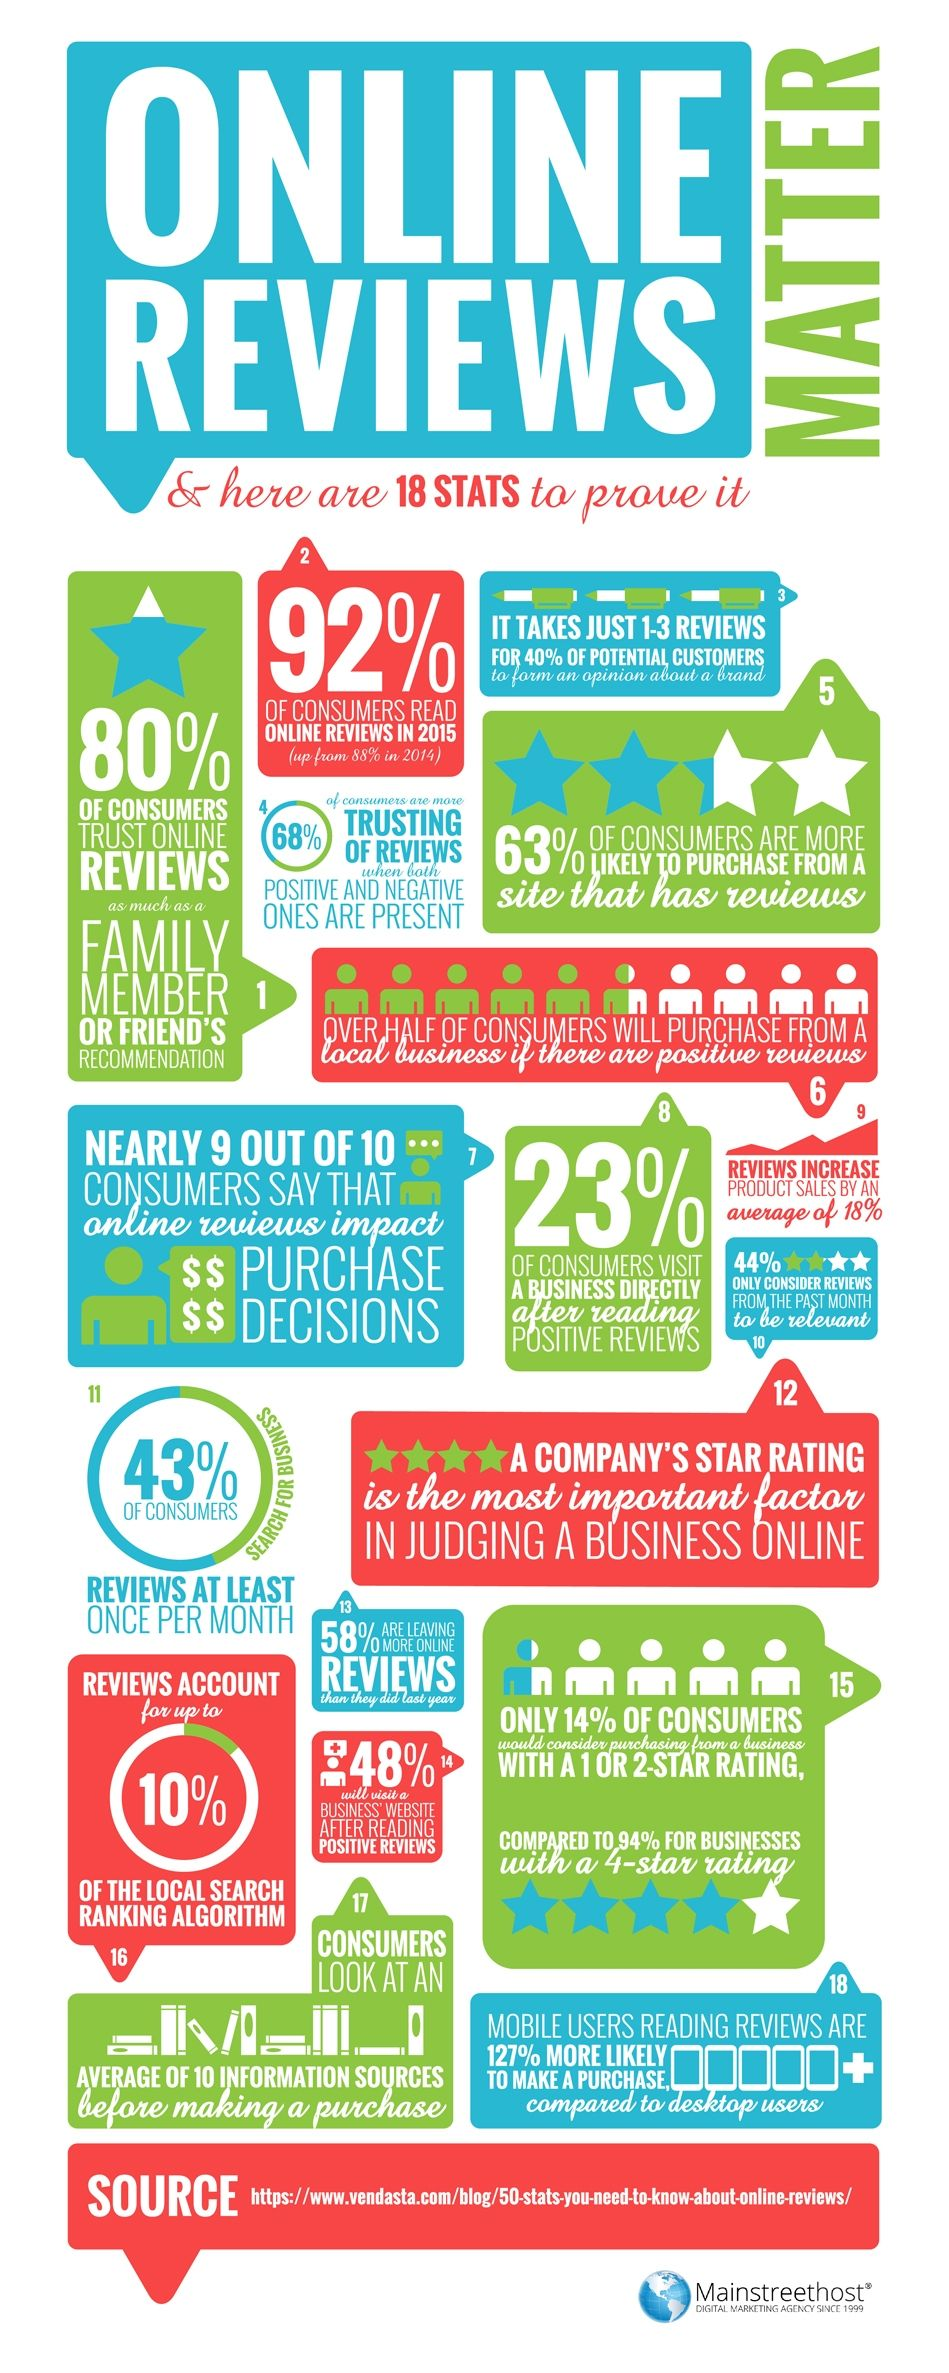 Online Reviews Matter – And Here Are 18 Stats To Prove It